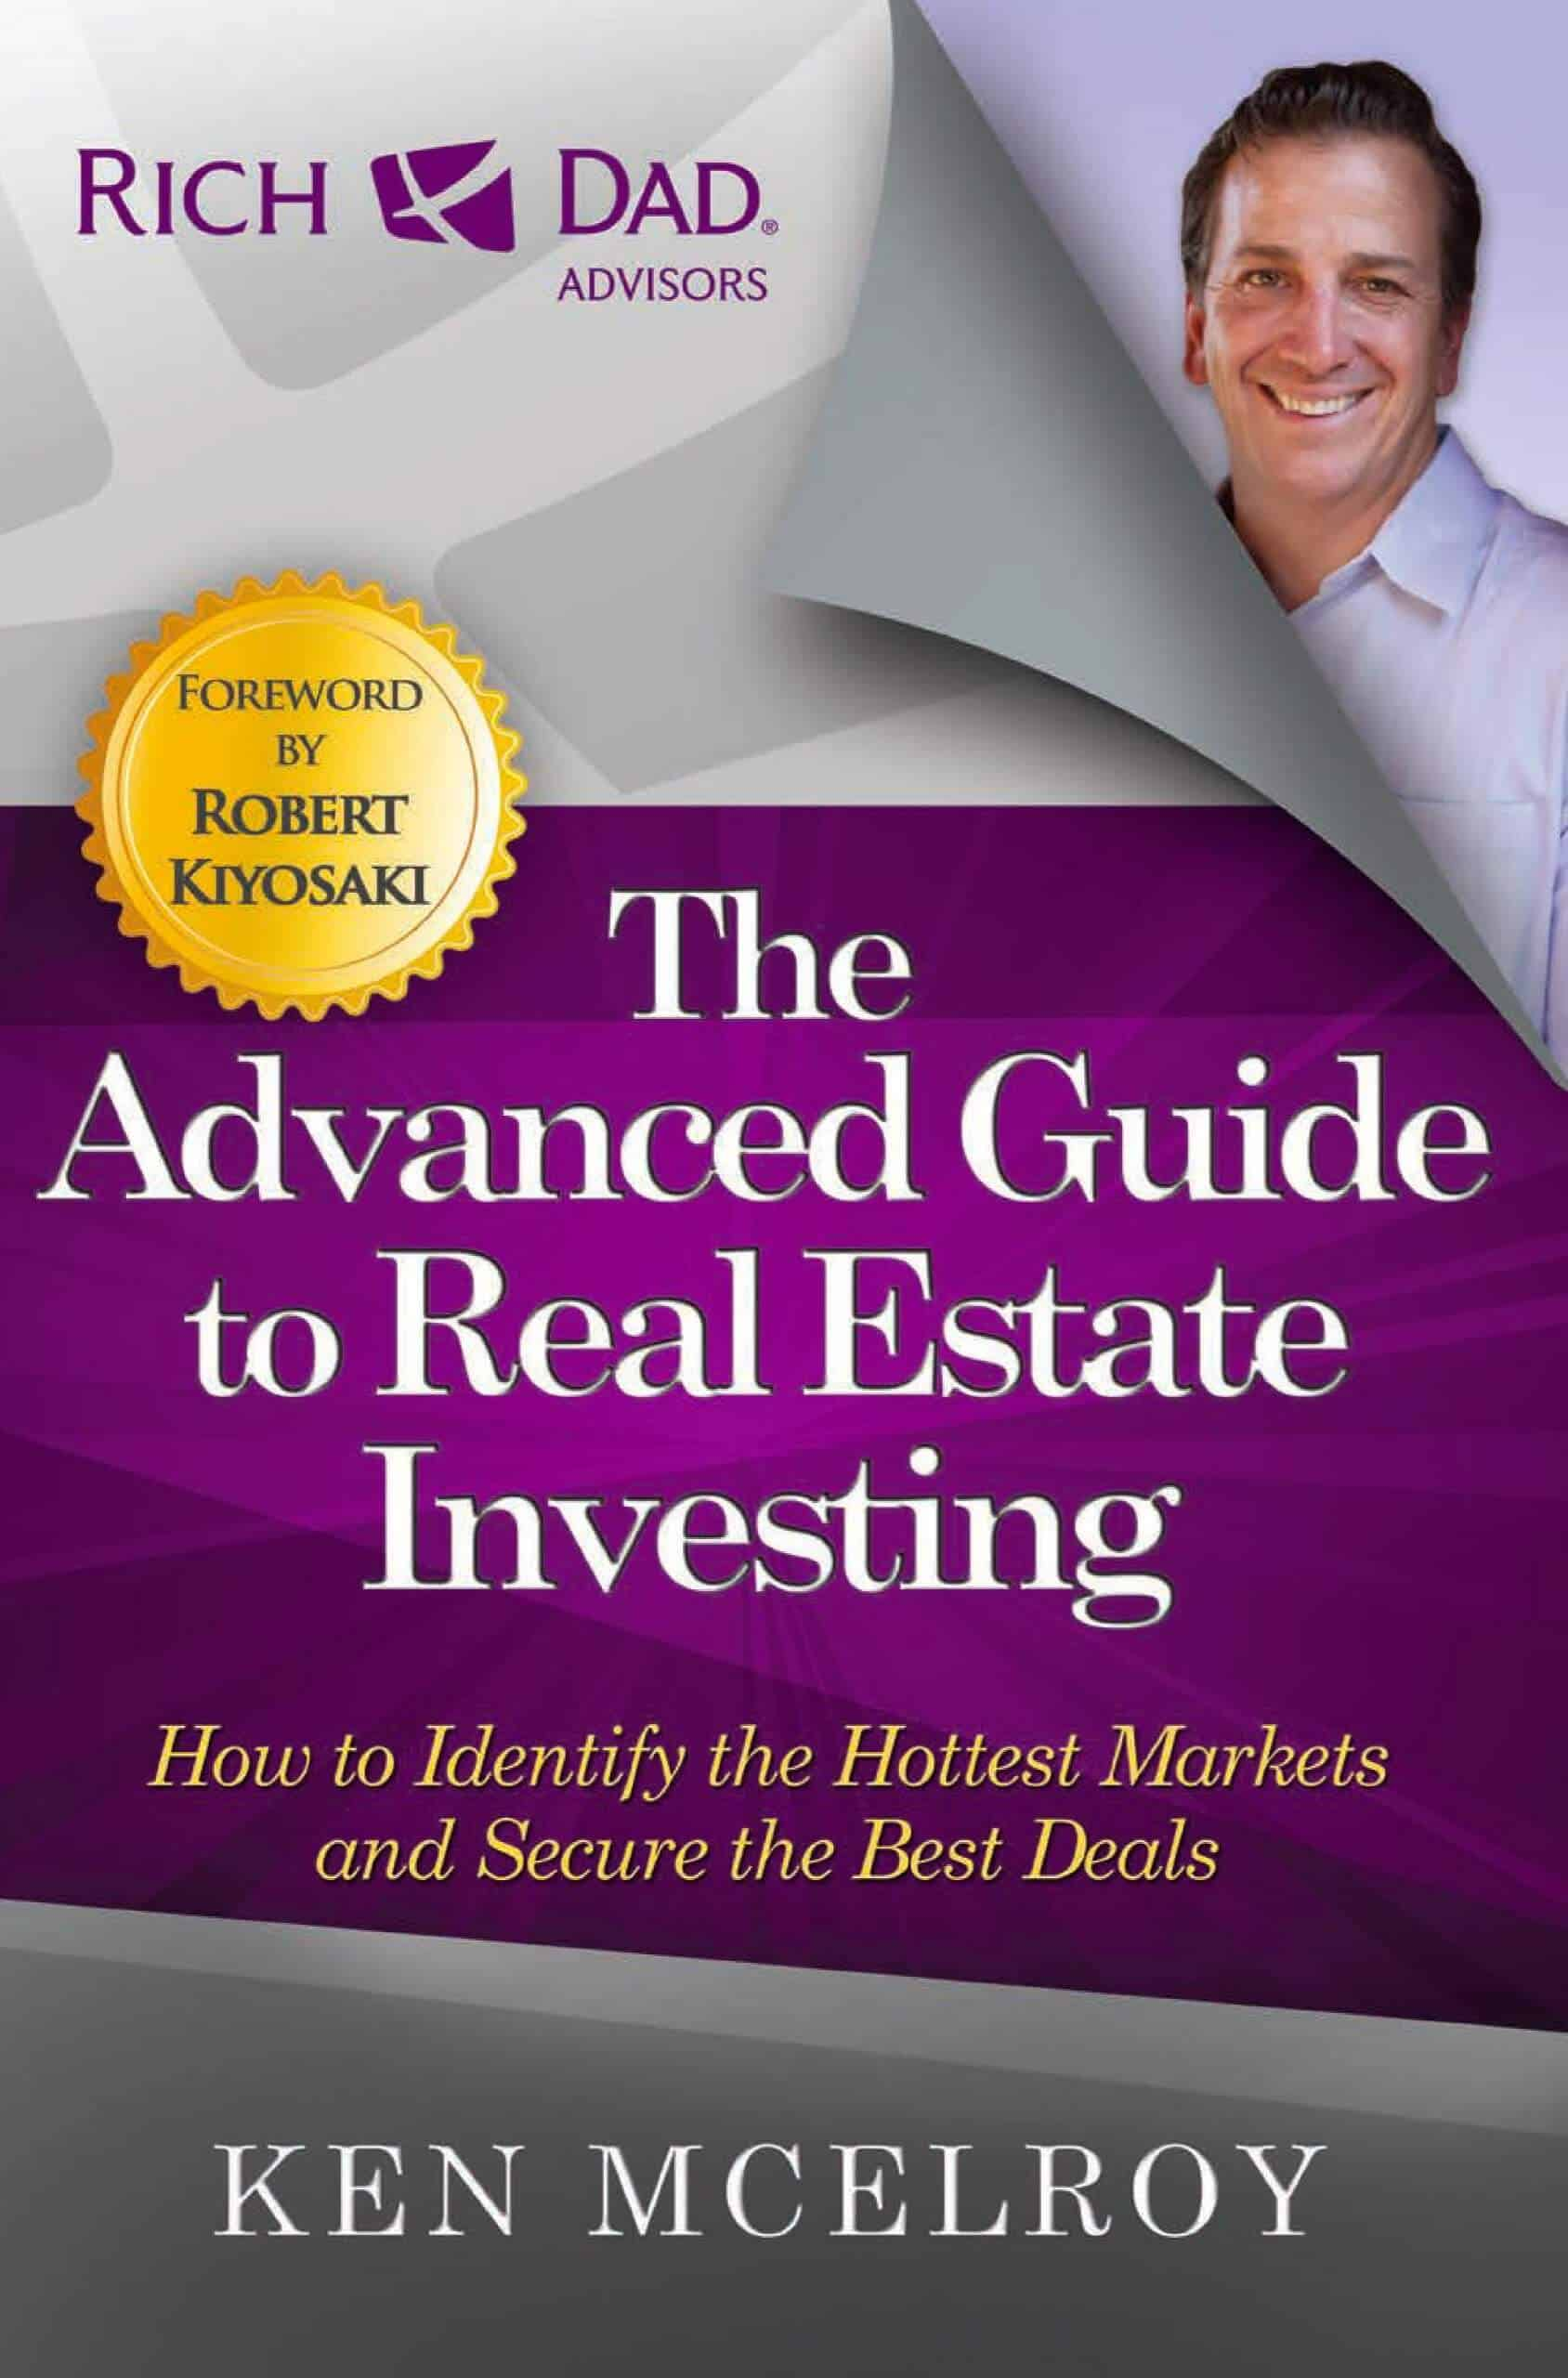 The Advanced Guide to Real Estate Investing How to Identify the Hottest Markets and Secure the Best Deals Rich Dads Advisors